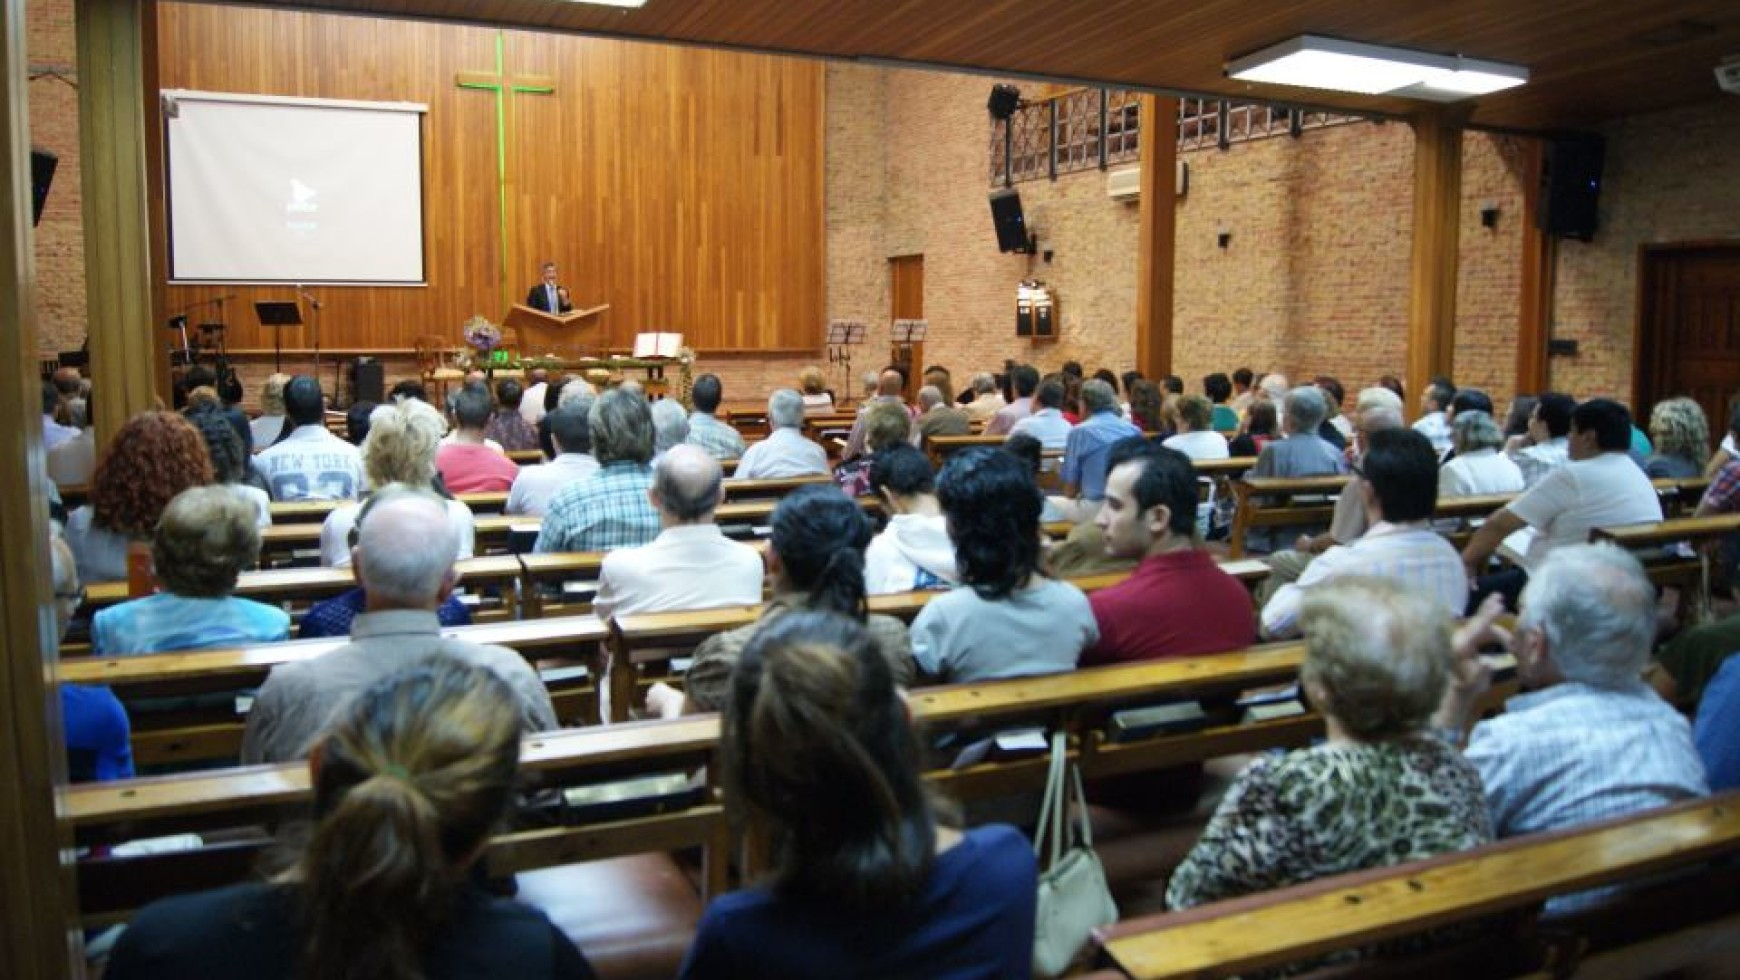 Culto – 2º Domingo de Adviento